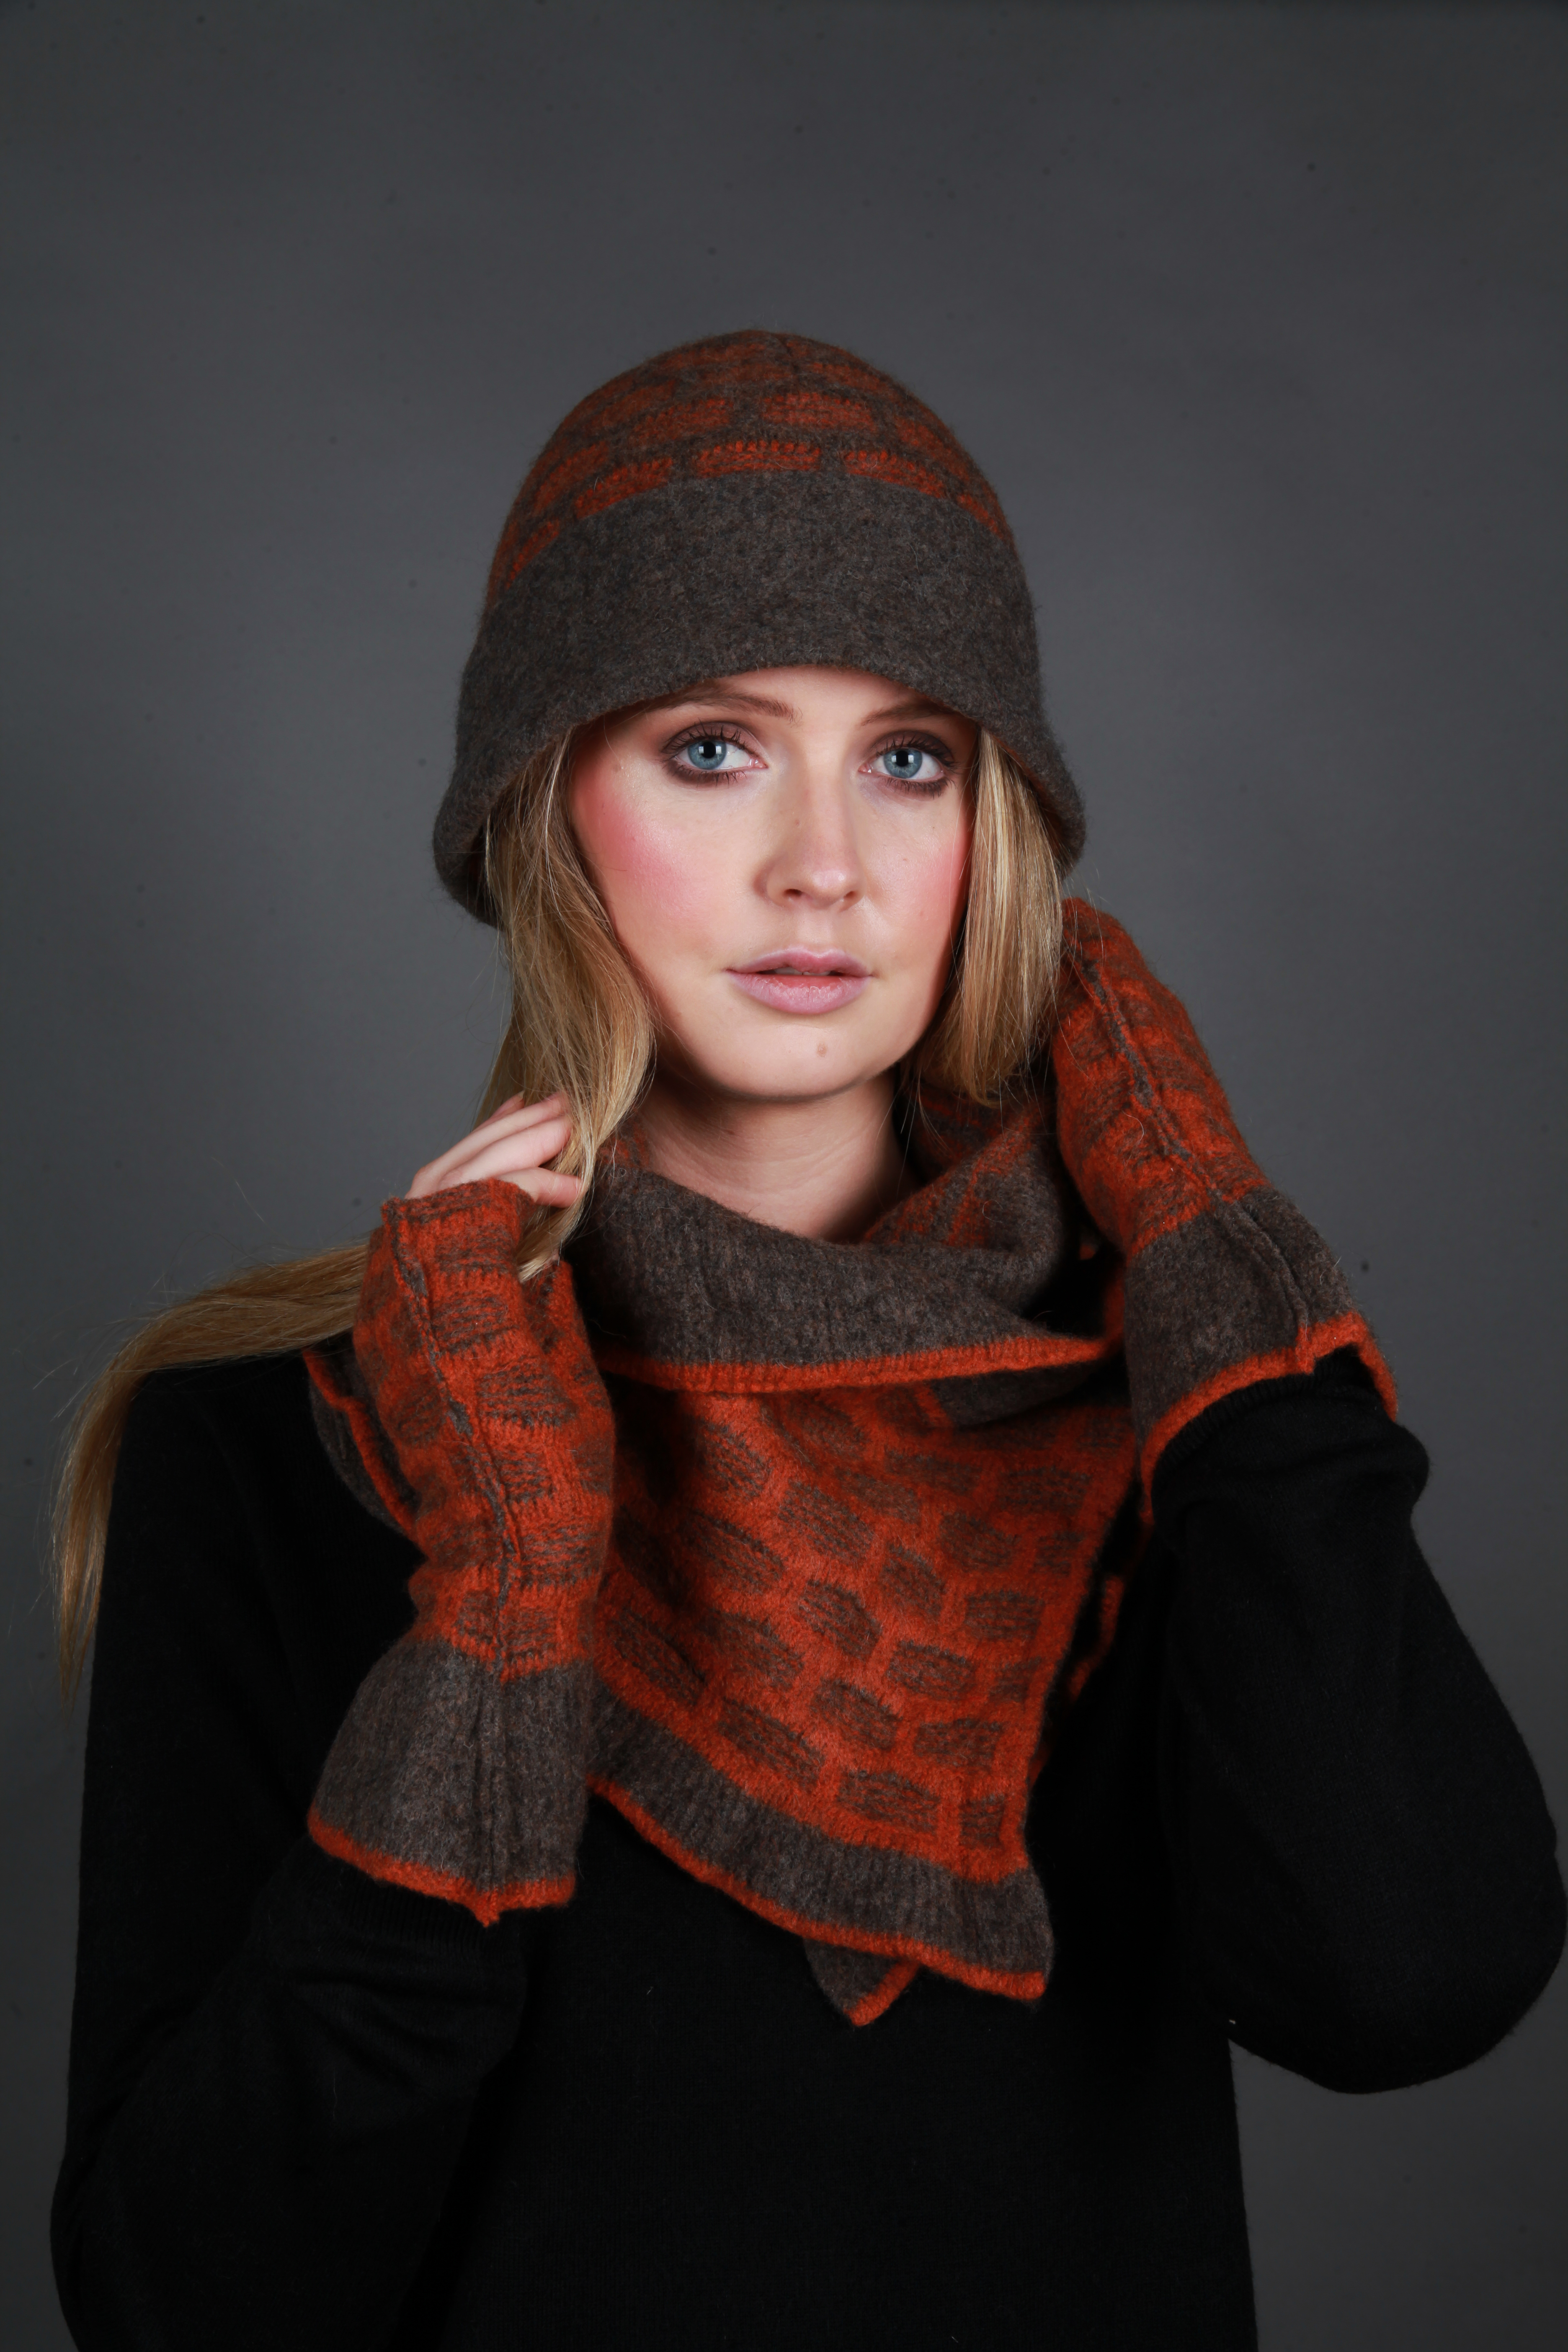 Cloche Textured Hat & Textured Squares scarf with fasteners